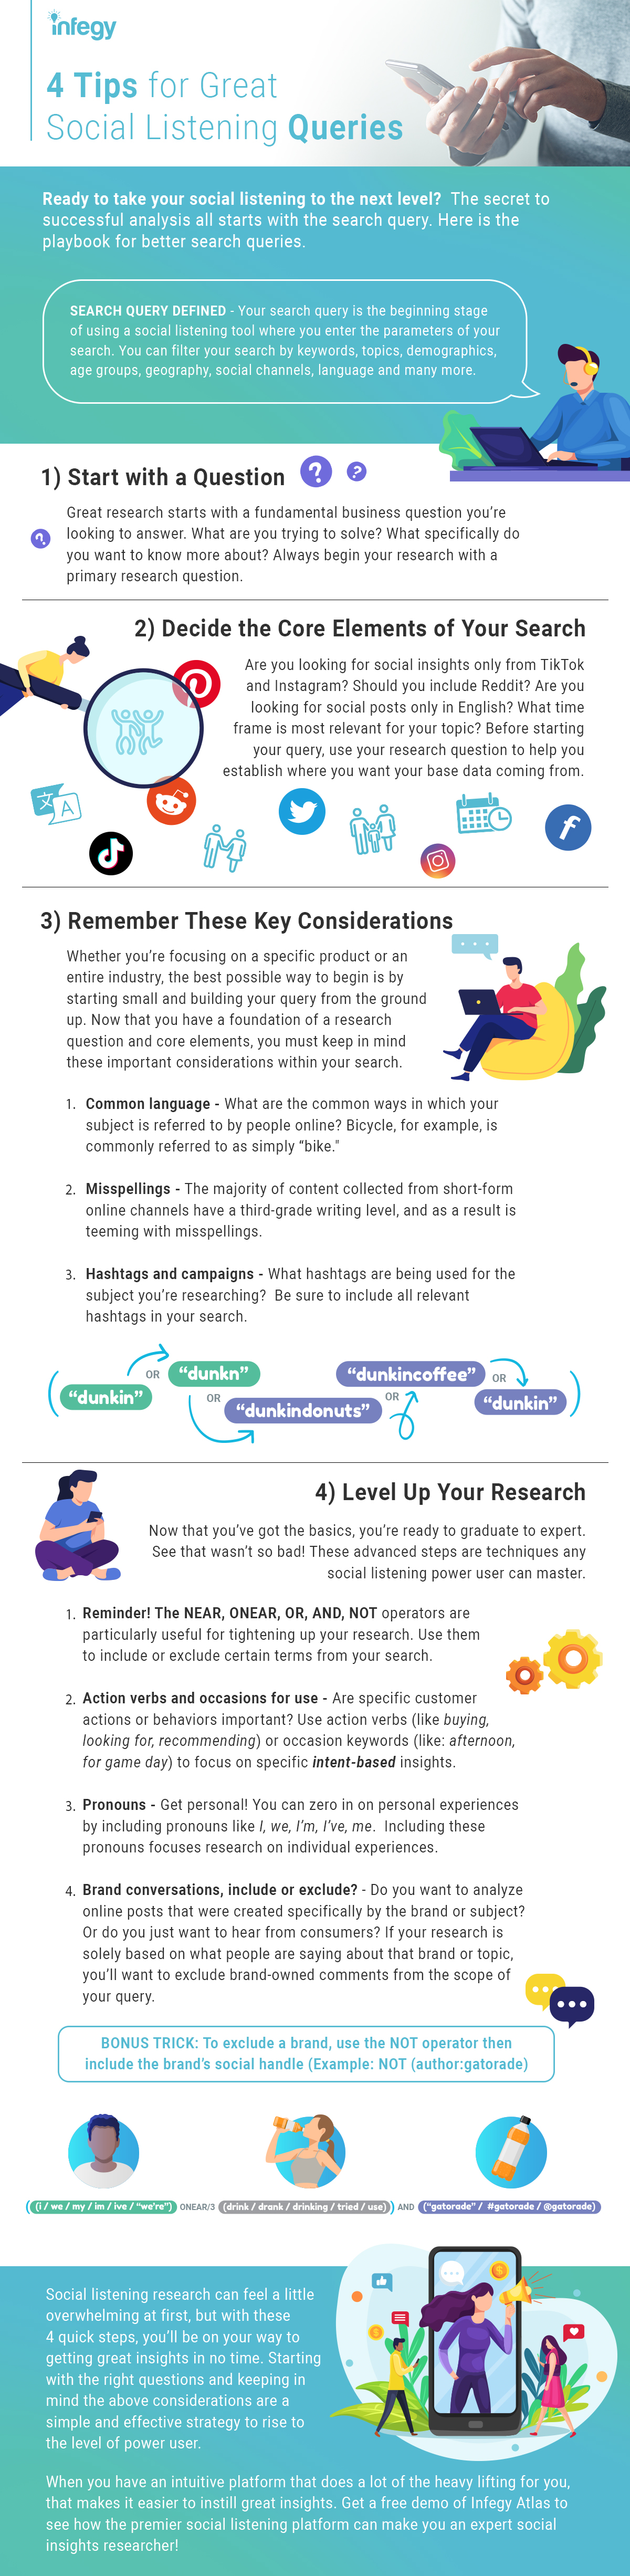 4 Tips for Great Social Listening Queries